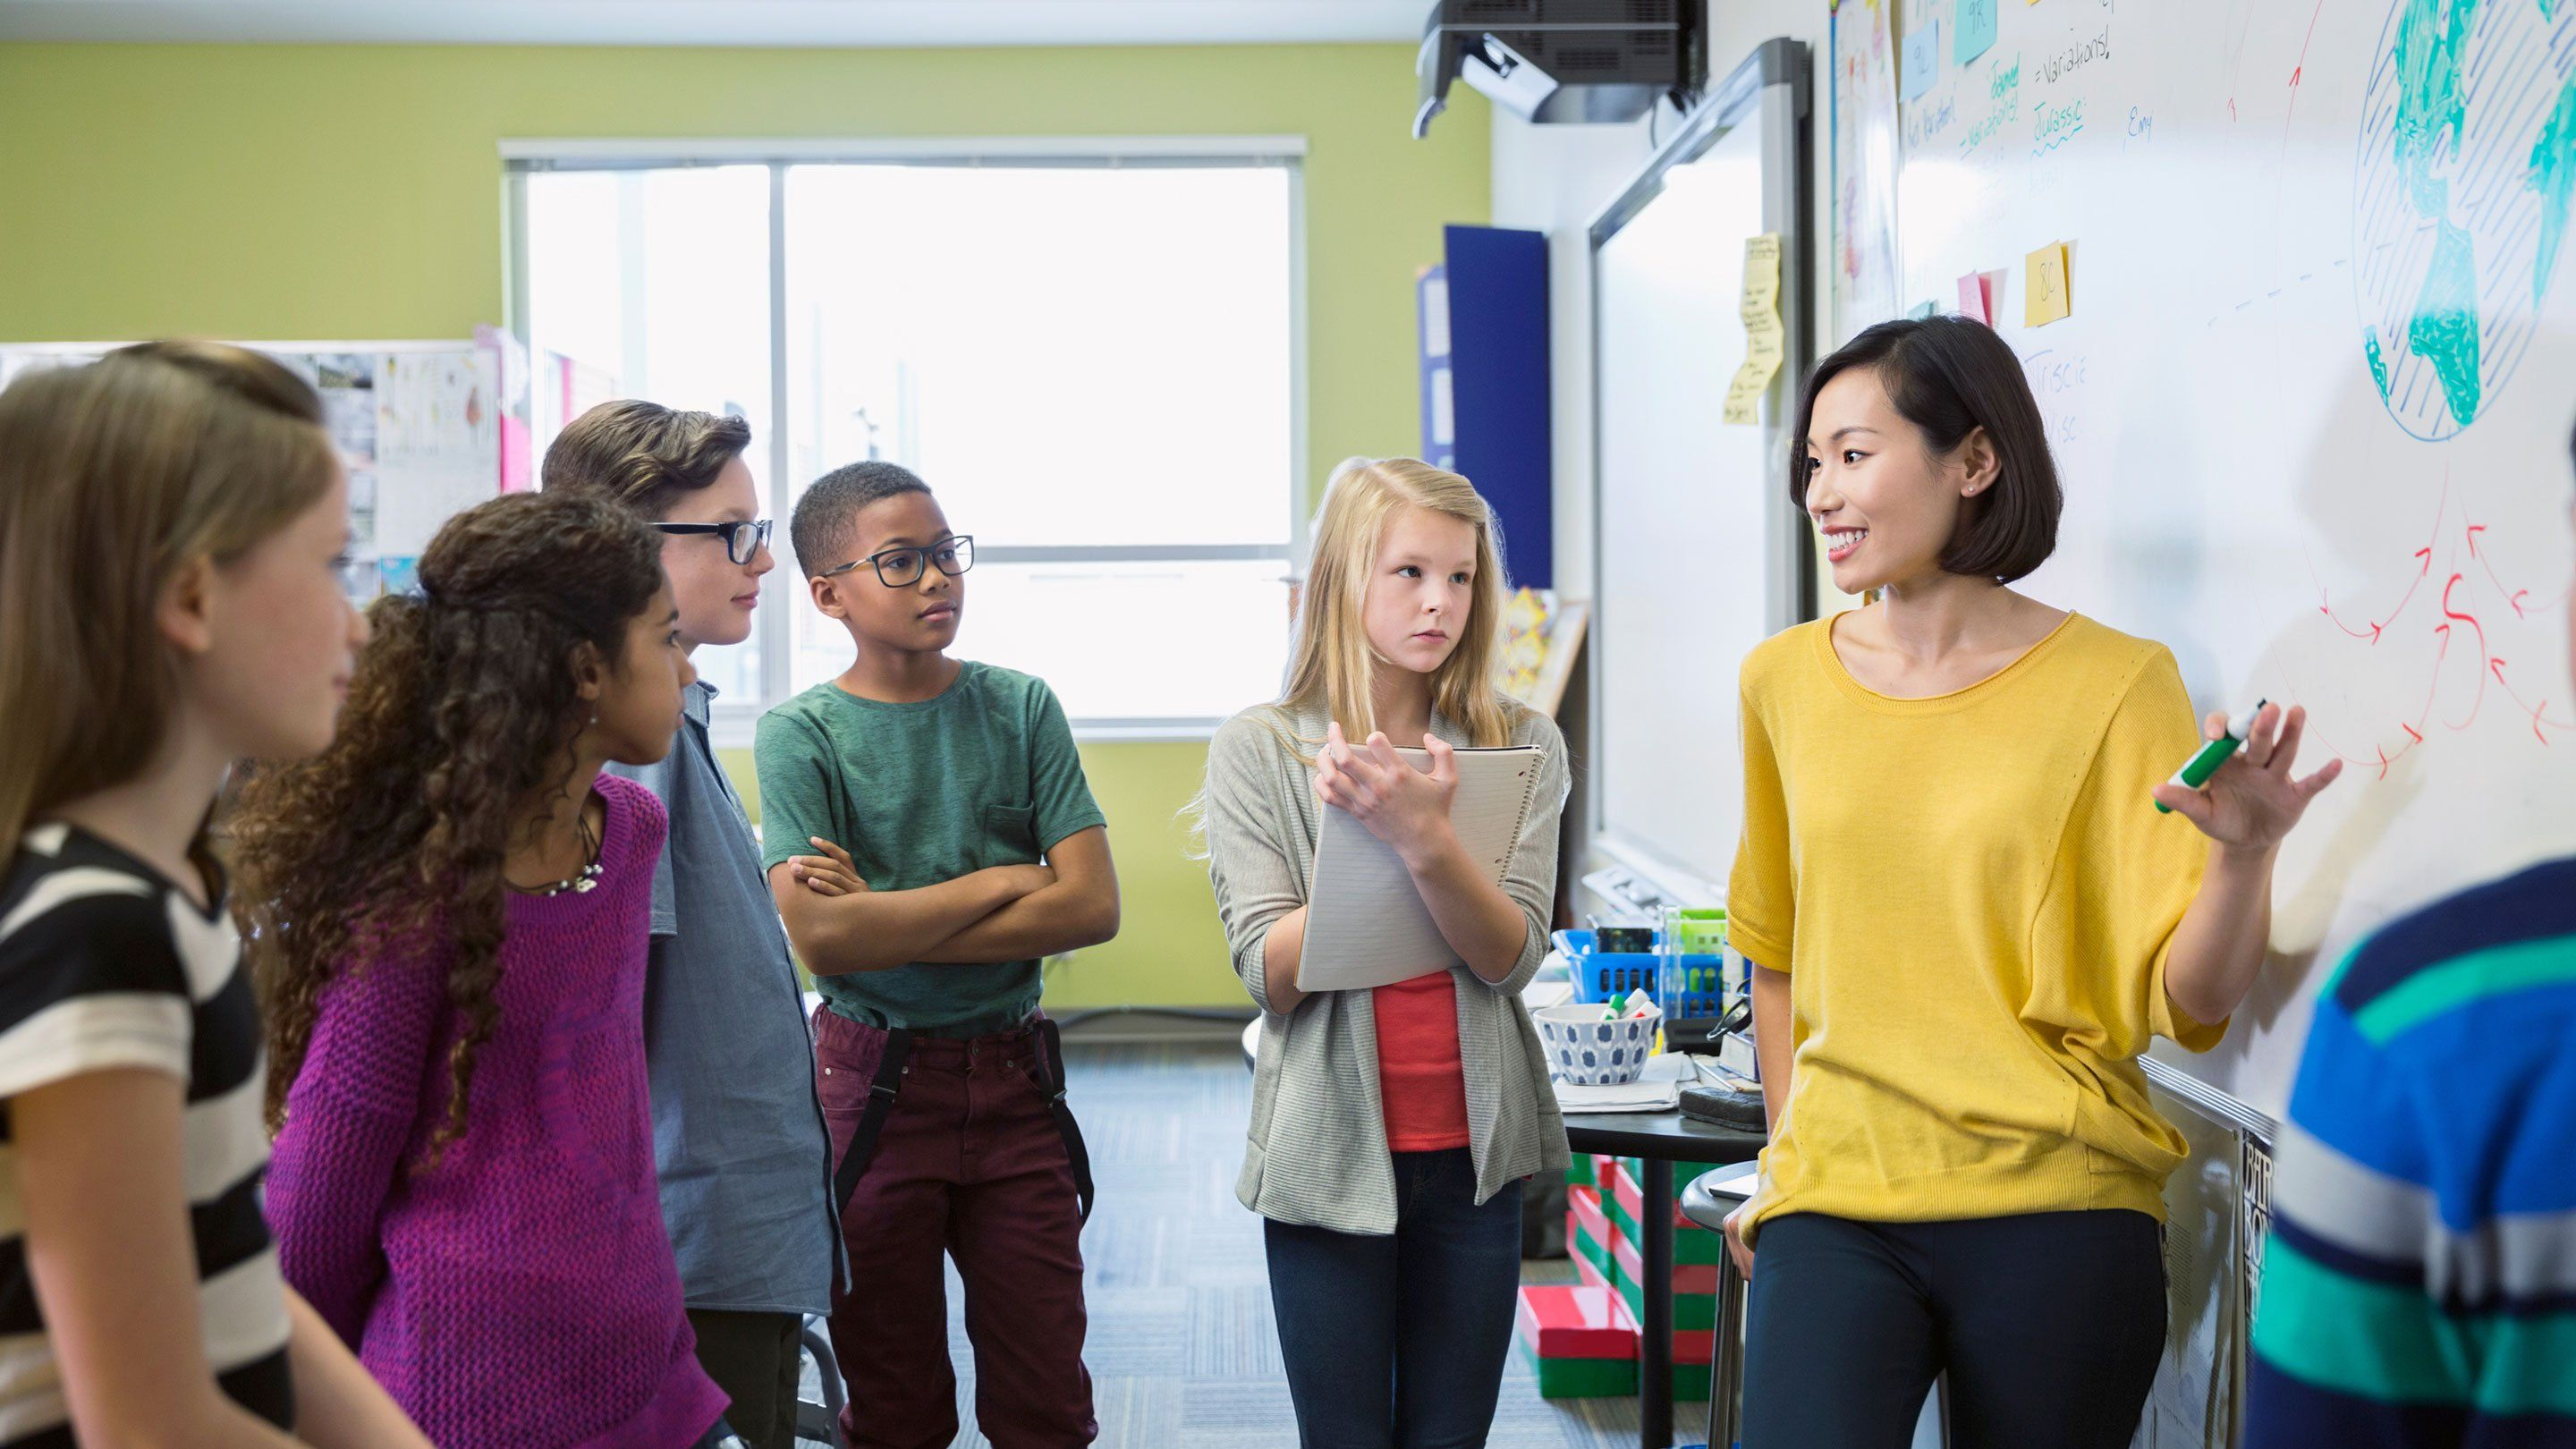 9 Tips For Overcoming Classroom Stage Fright